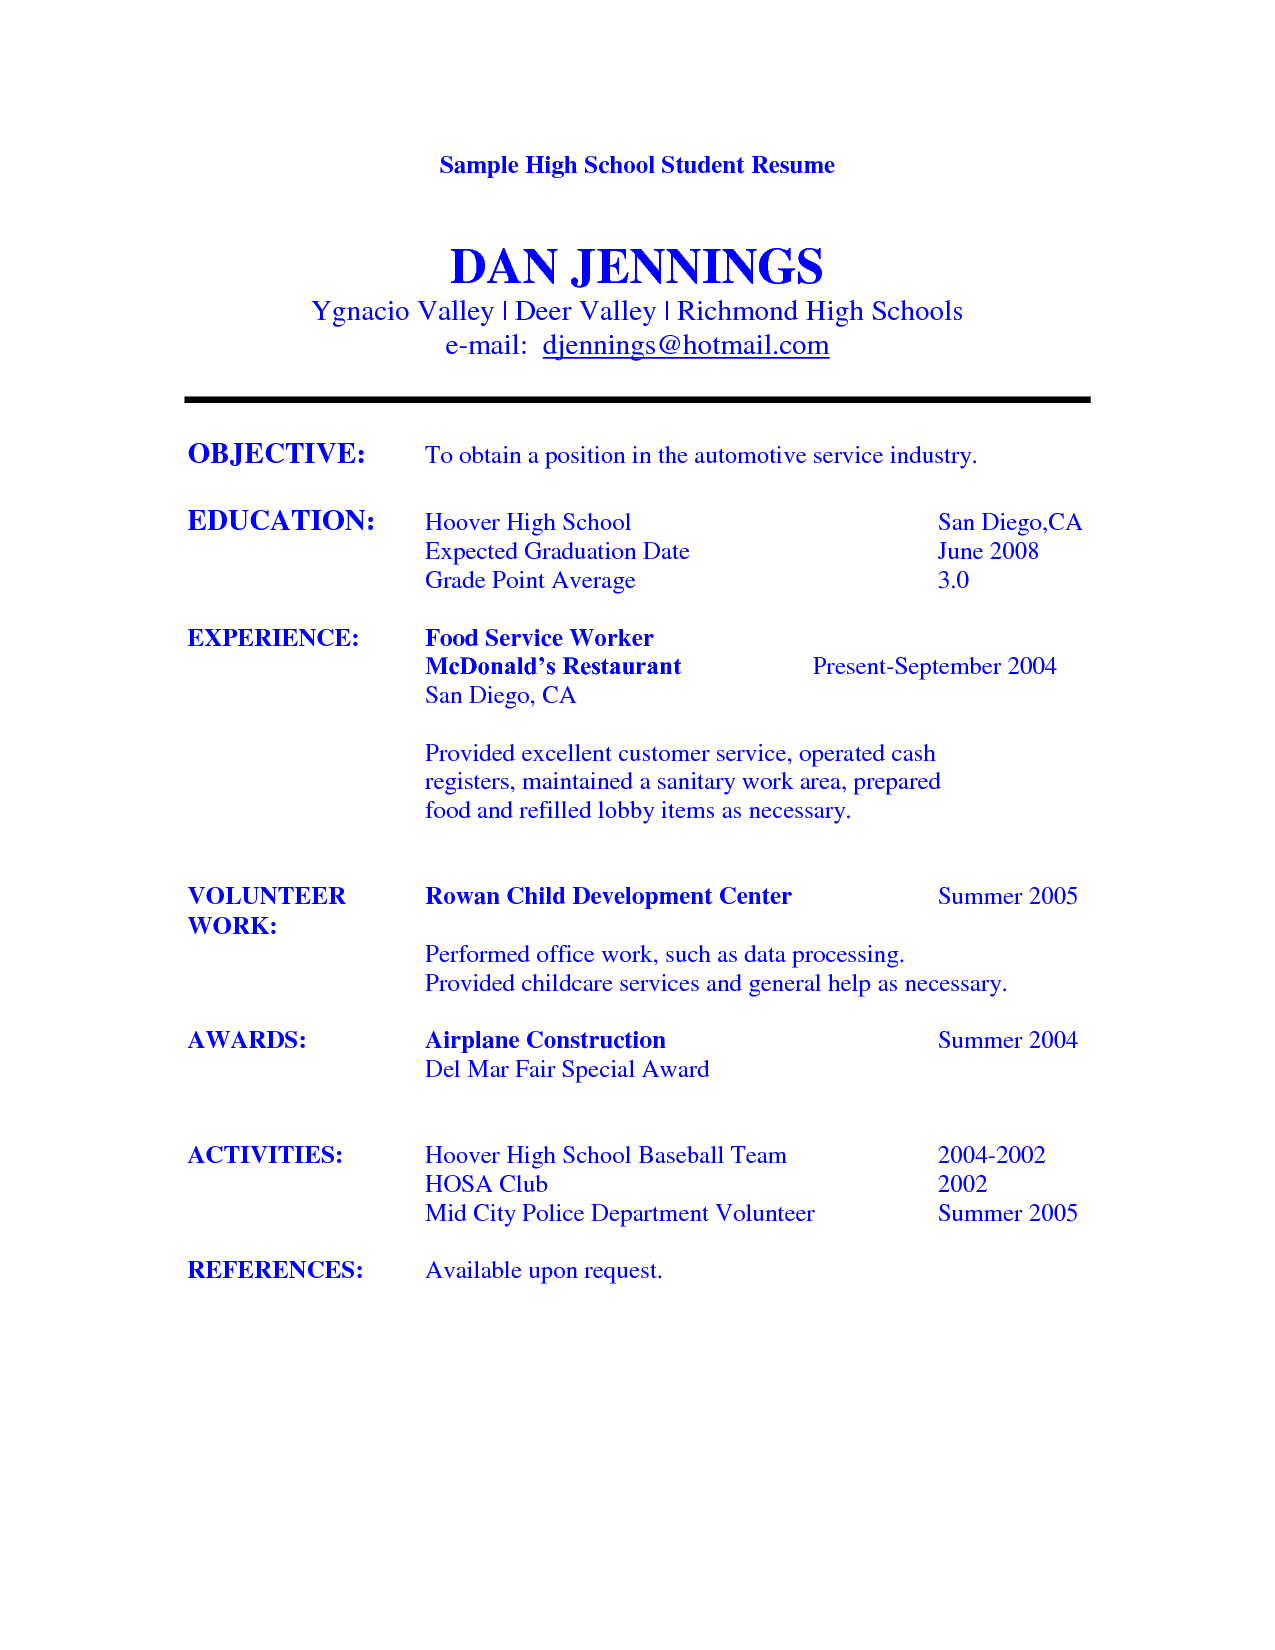 Resume Reference Examples Resume Example For High School Student Sample Resumes  Httpwww